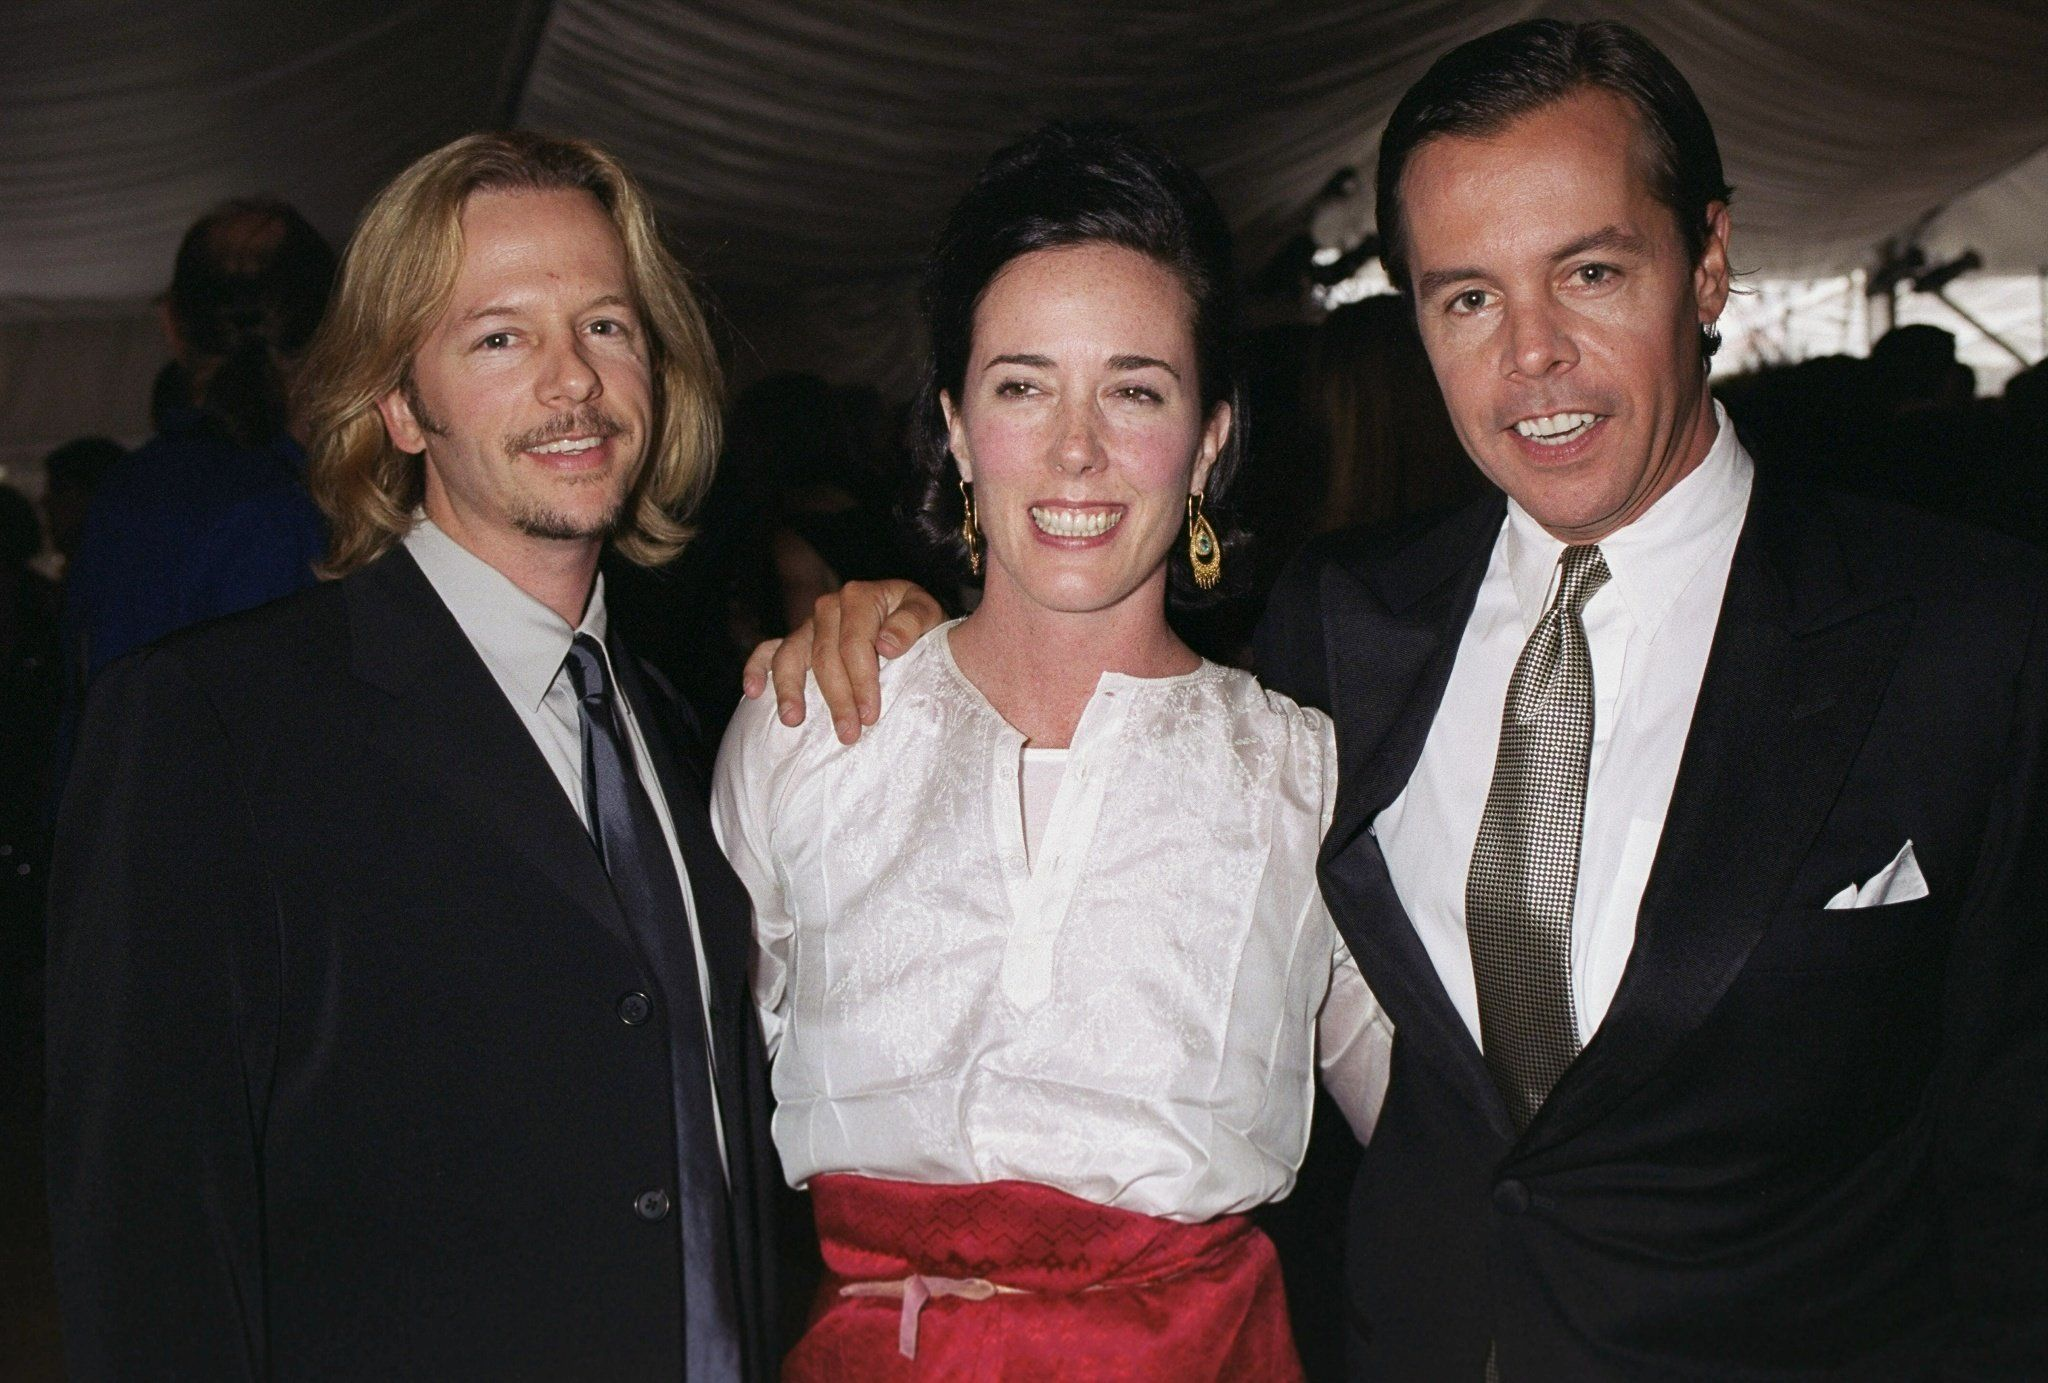 UNITED STATES - CIRCA 2000:  Actor David Spade (left) joins his big brother, Andy, a menswear designer, and Andy's wife, accessories designer Kate Spade, at Lincoln Center's Avery Fisher Hall for the 20th annual American Fashion Awards.  (Photo by Richard Corkery/NY Daily News Archive via Getty Images)